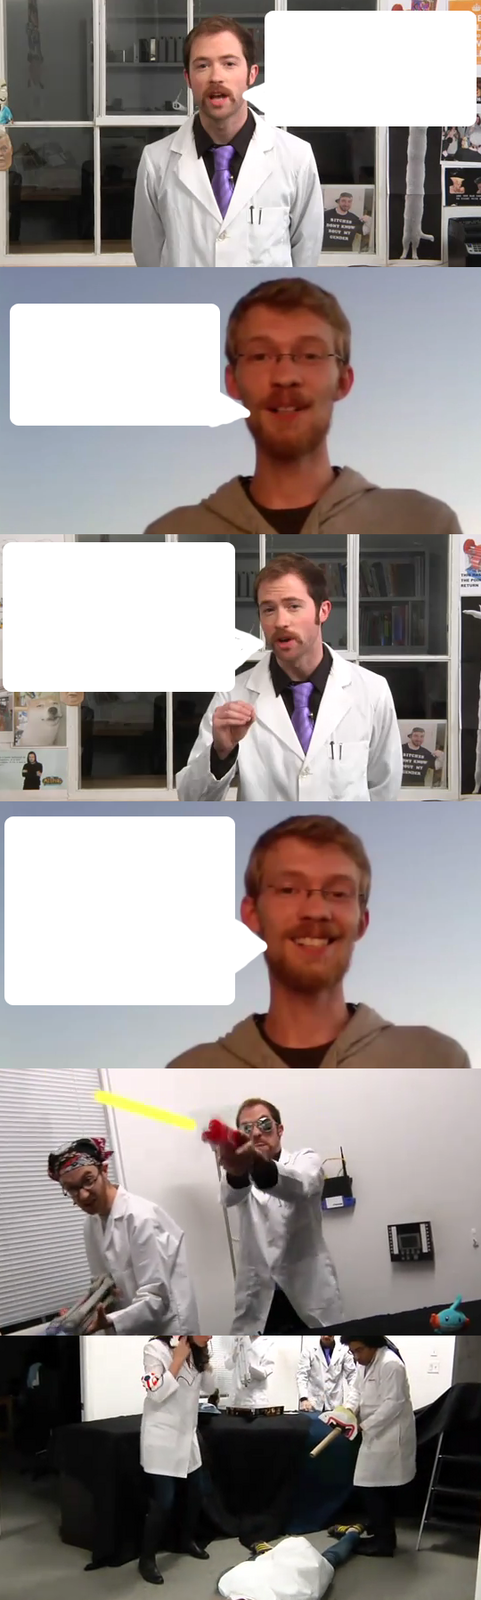 chris-mike.png